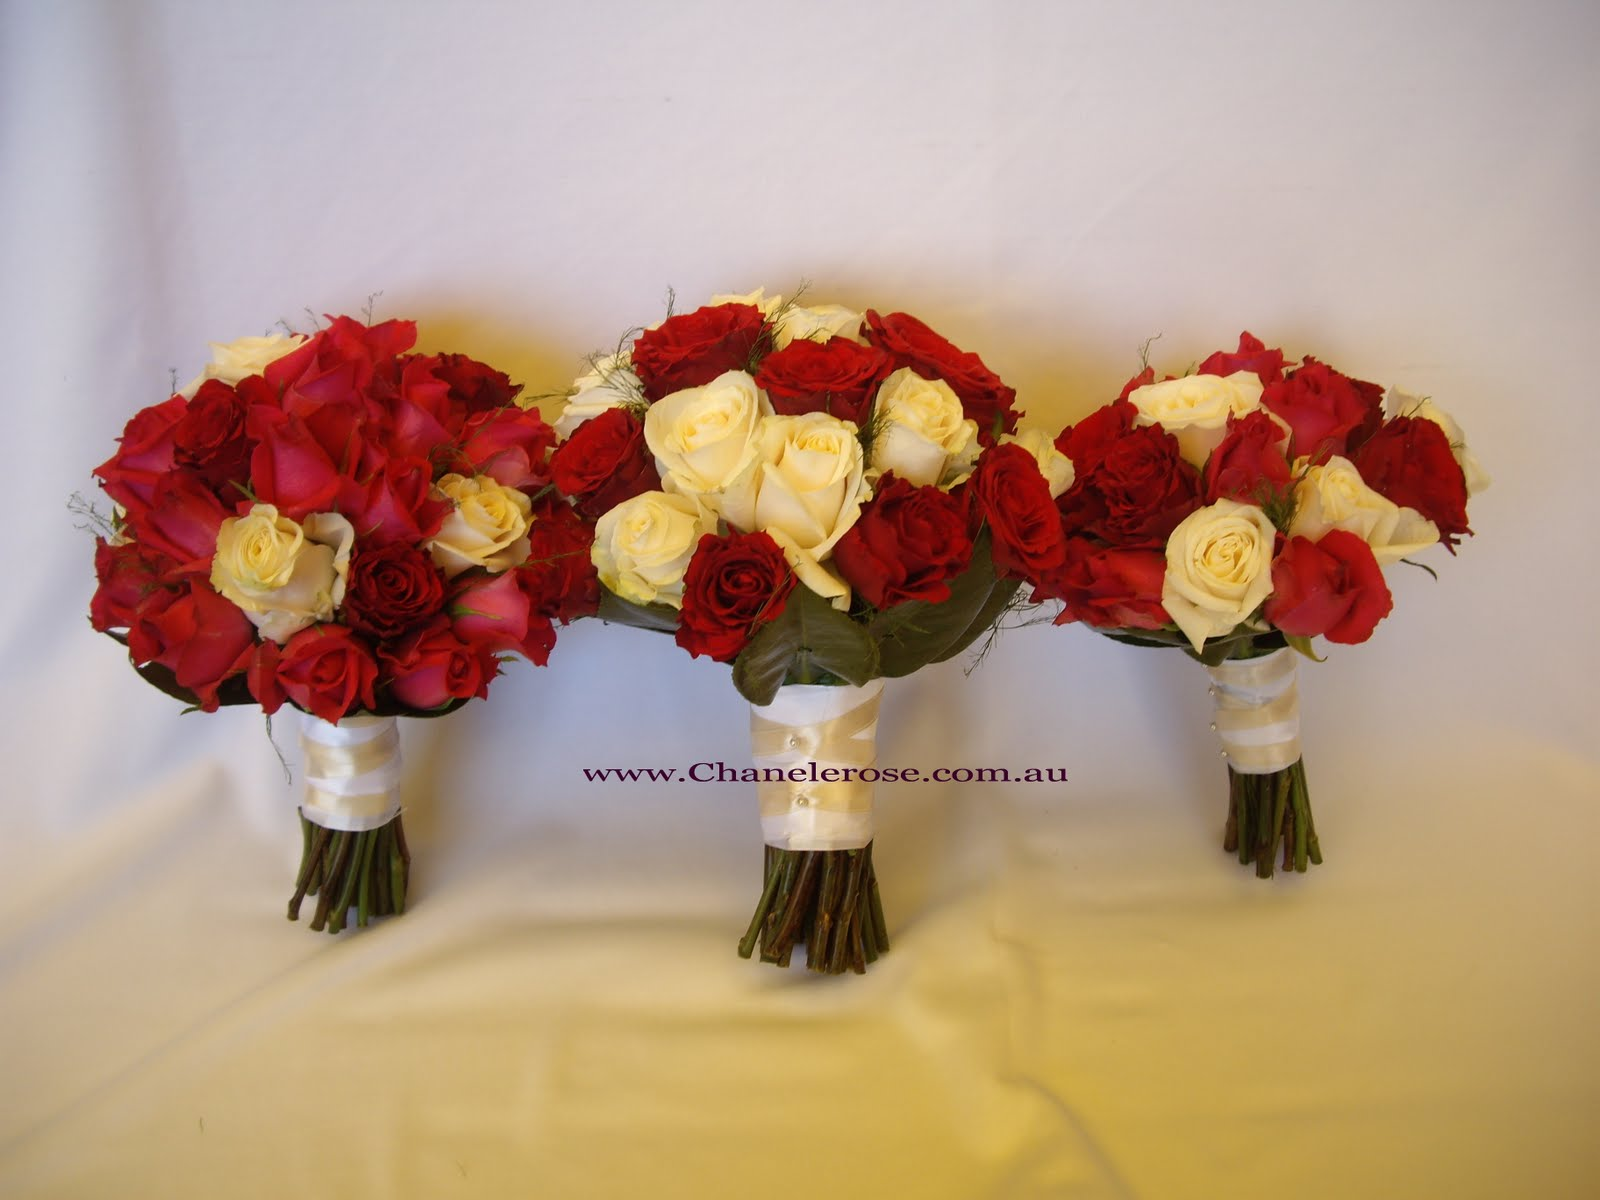 Chanele rose flowers blog sydney wedding stylist florist red red pink and white roses wedding bouquets mightylinksfo